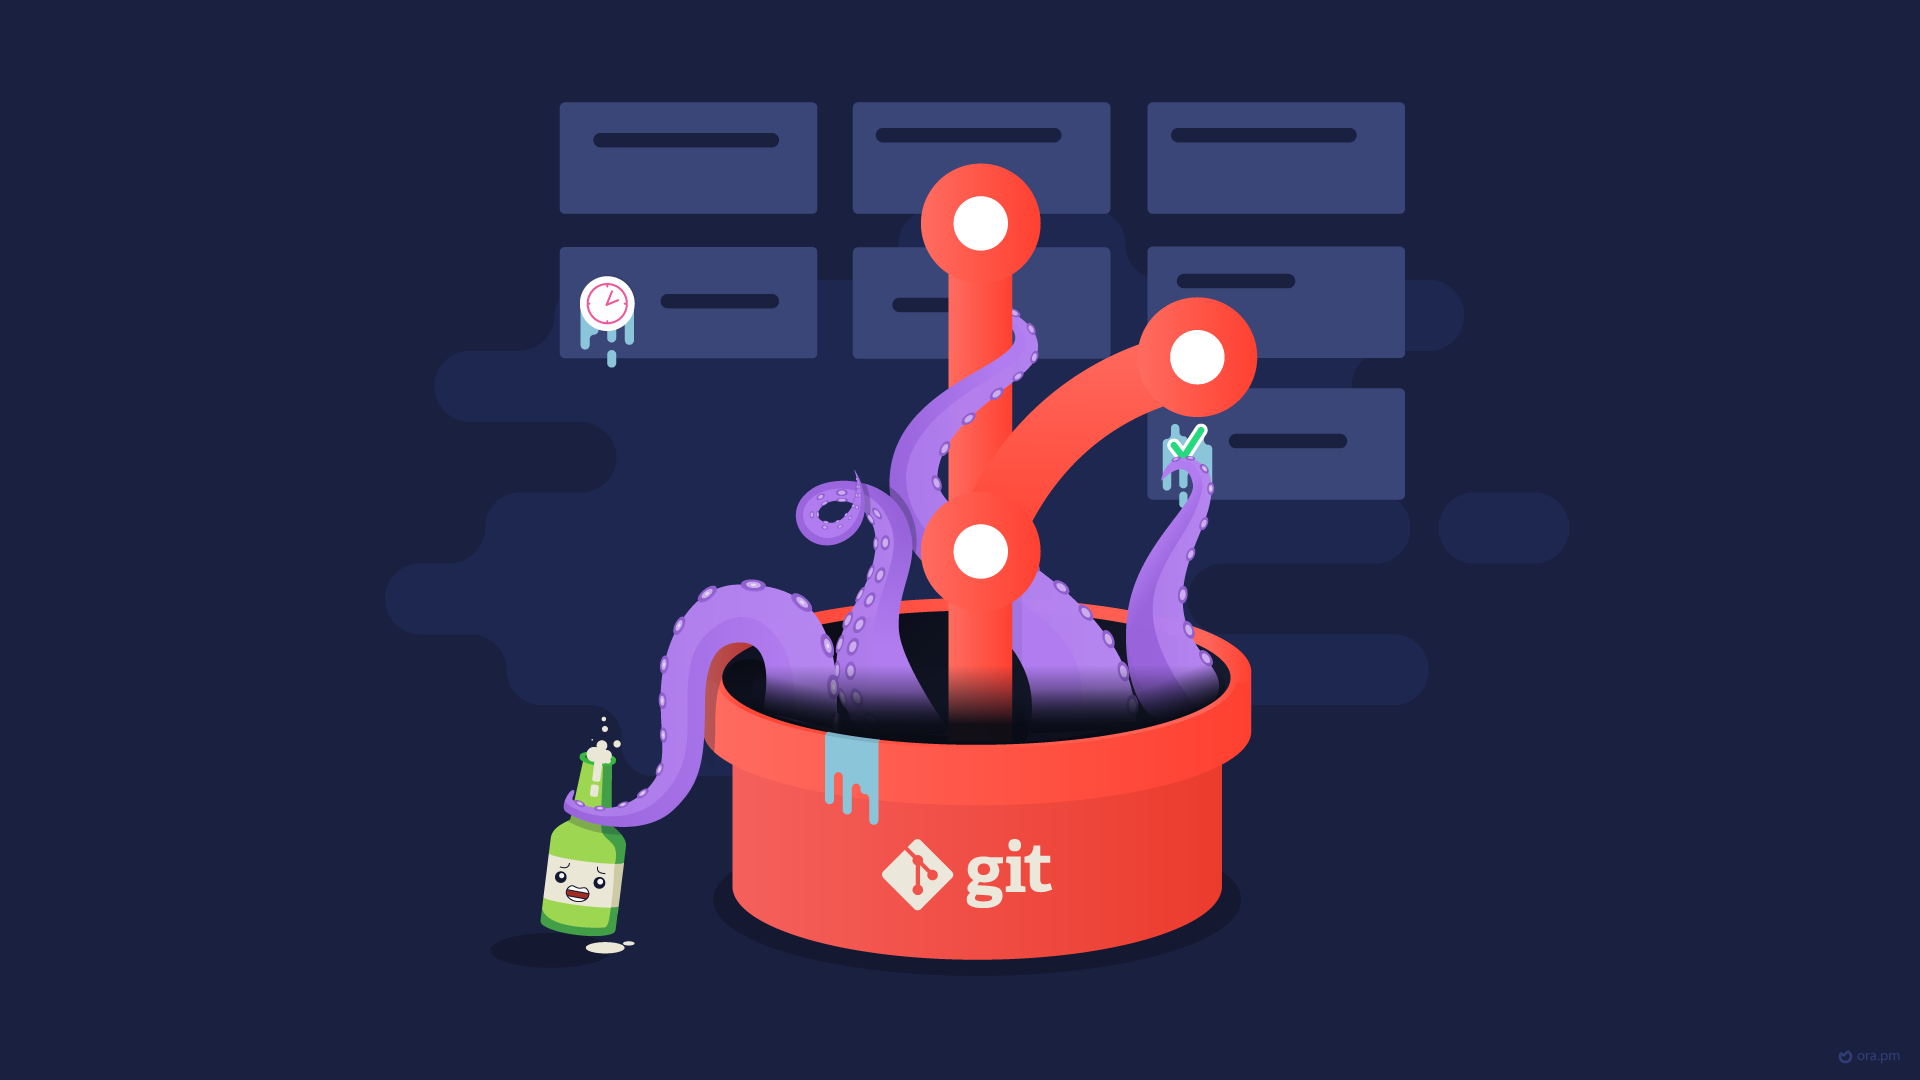 Git monster wallpaper